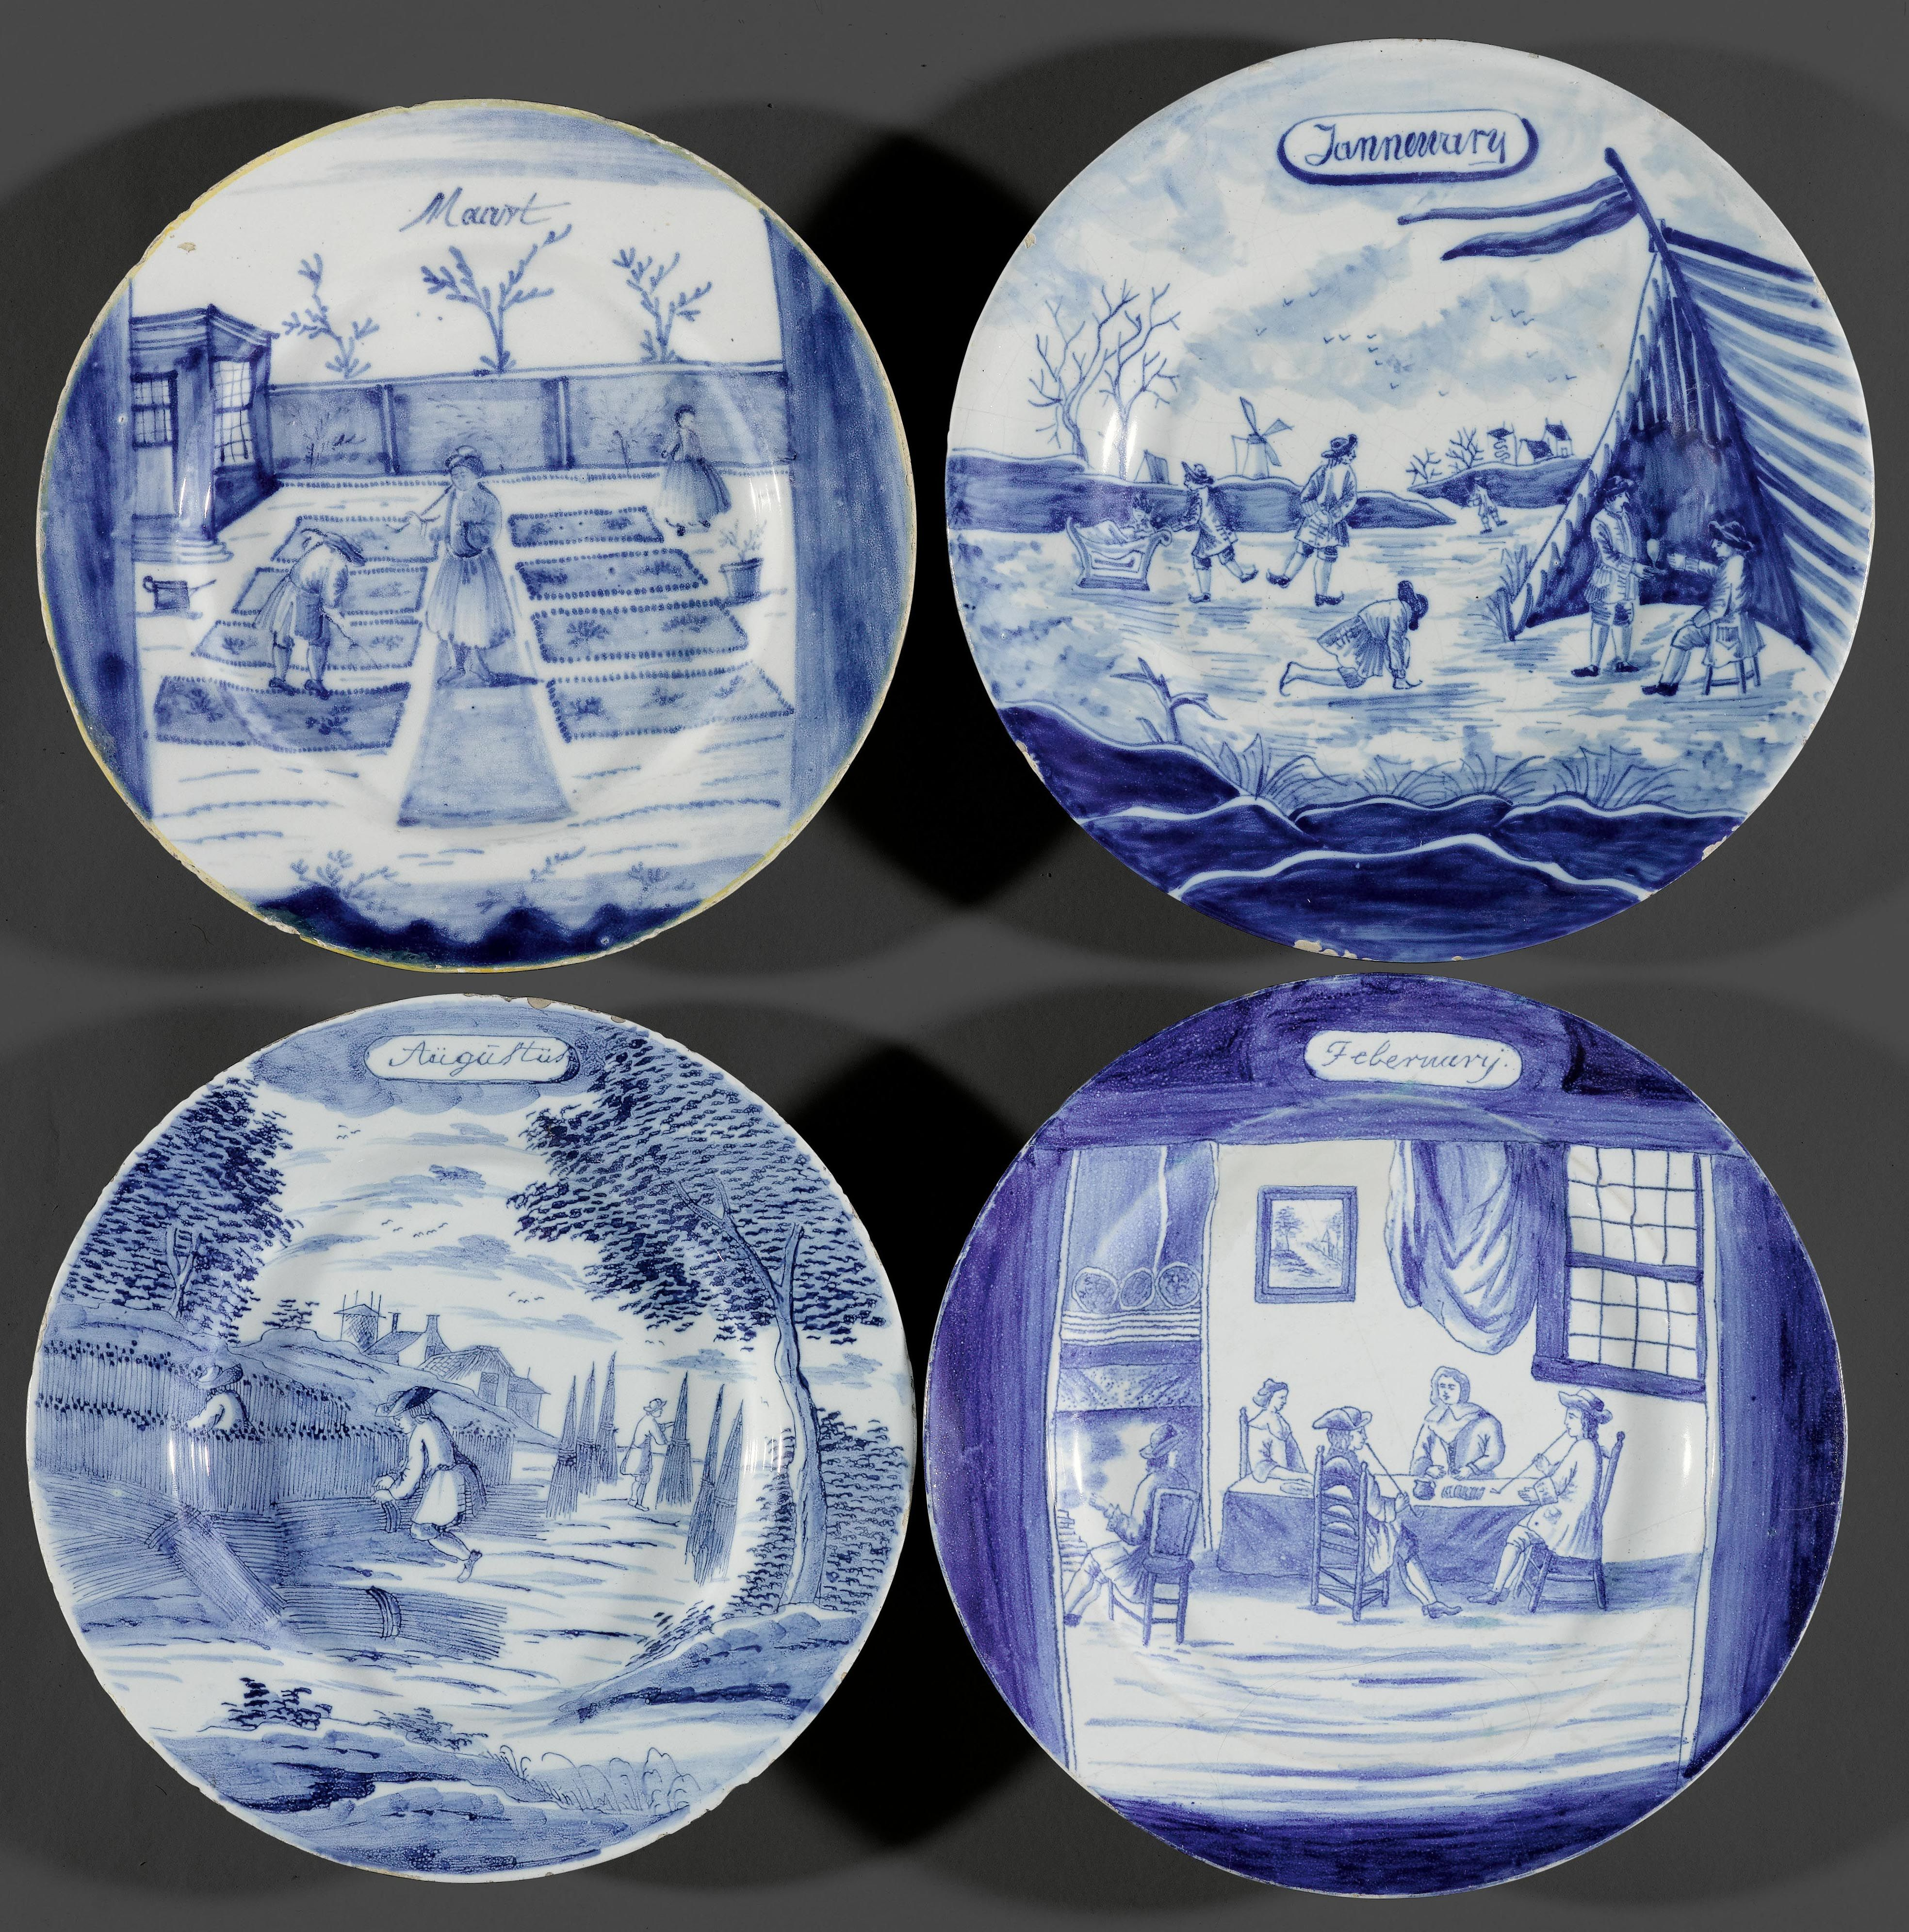 LOT OF 4 PLATES DEPICTING THE MONTHS OF THE YEAR,